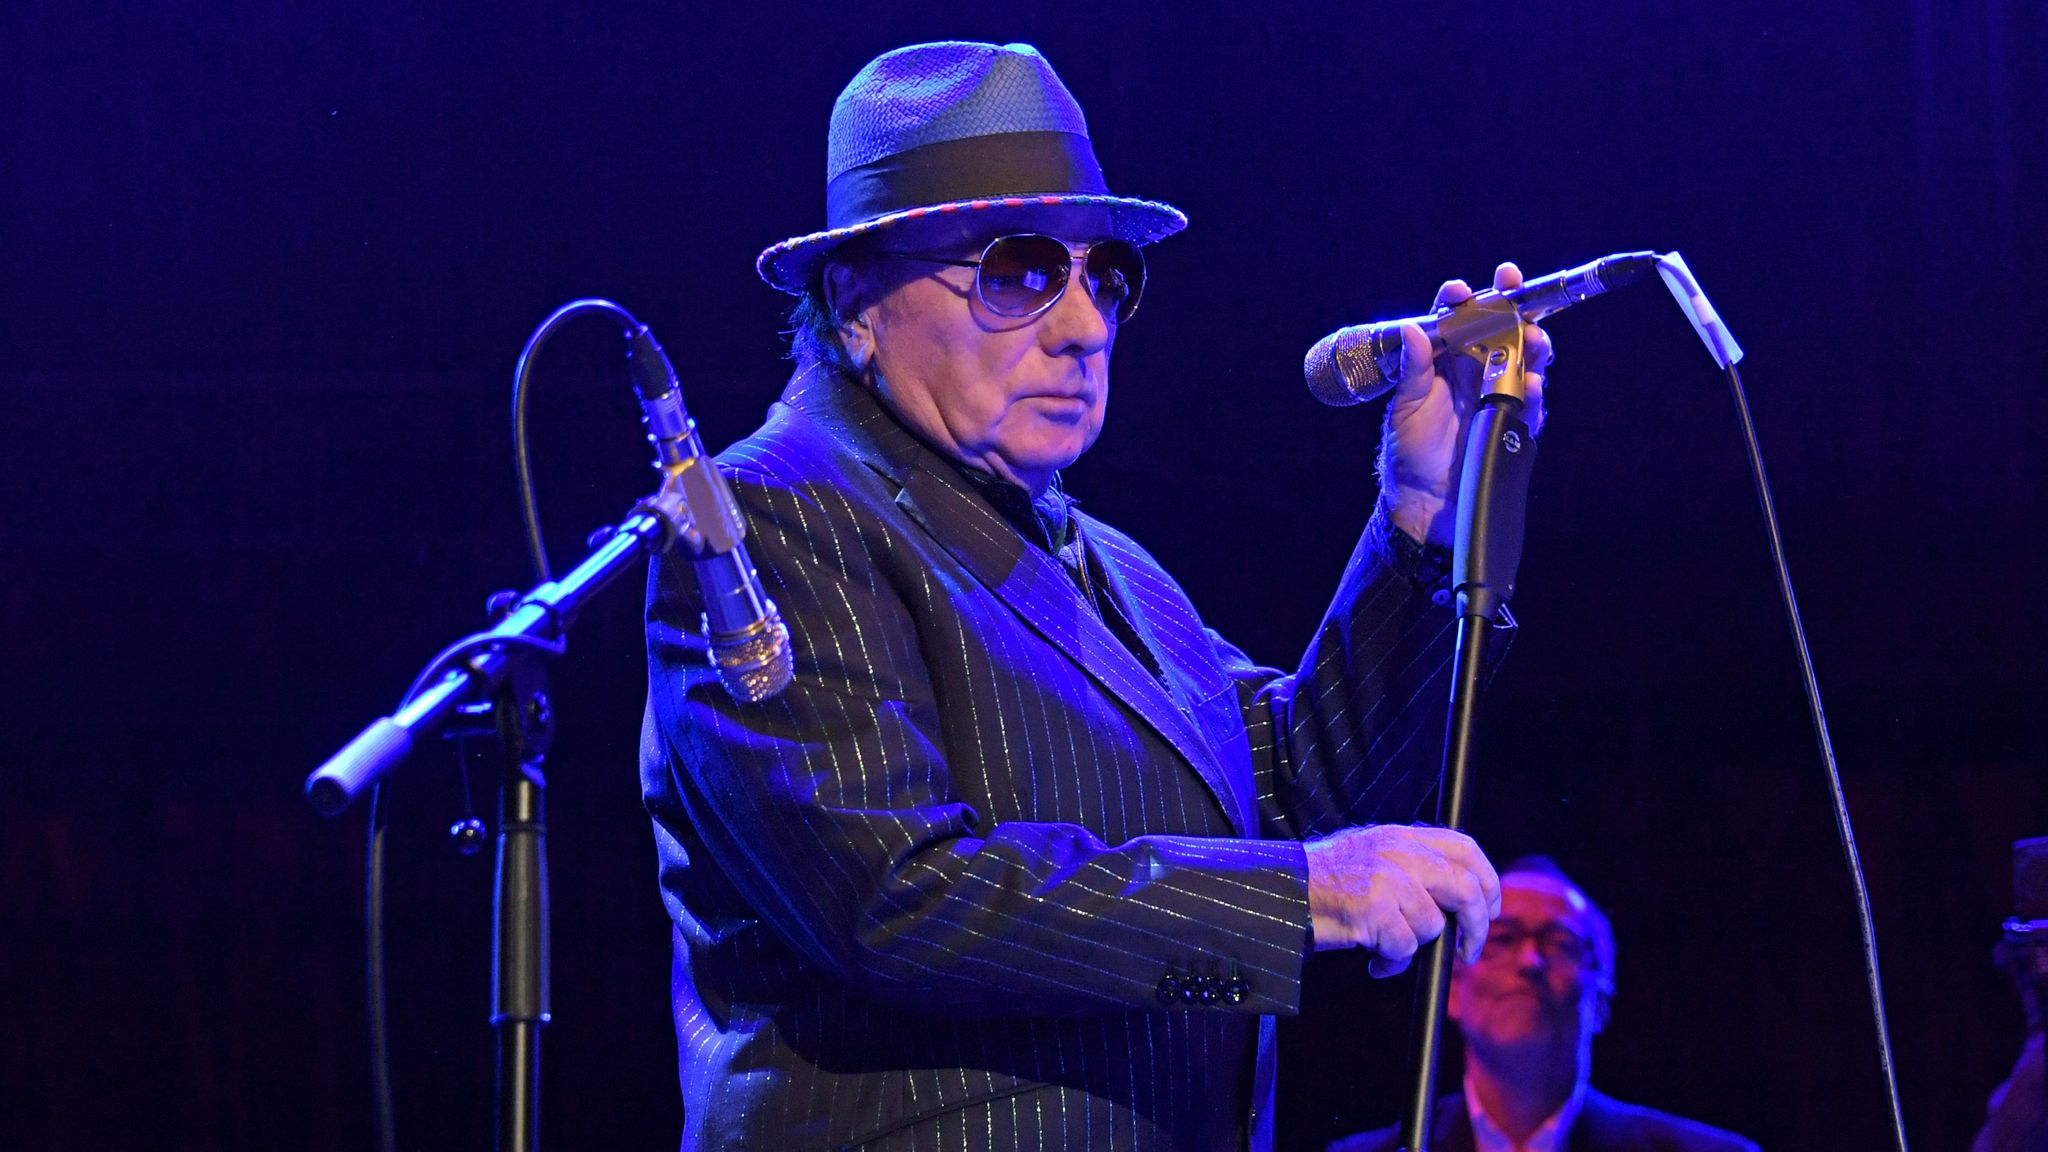 """Van Morrison performs at """"A Night At Ronnie Scotts: 60th Anniversary Gala"""" at the Royal Albert Hall on October 30, 2019 in London, England"""